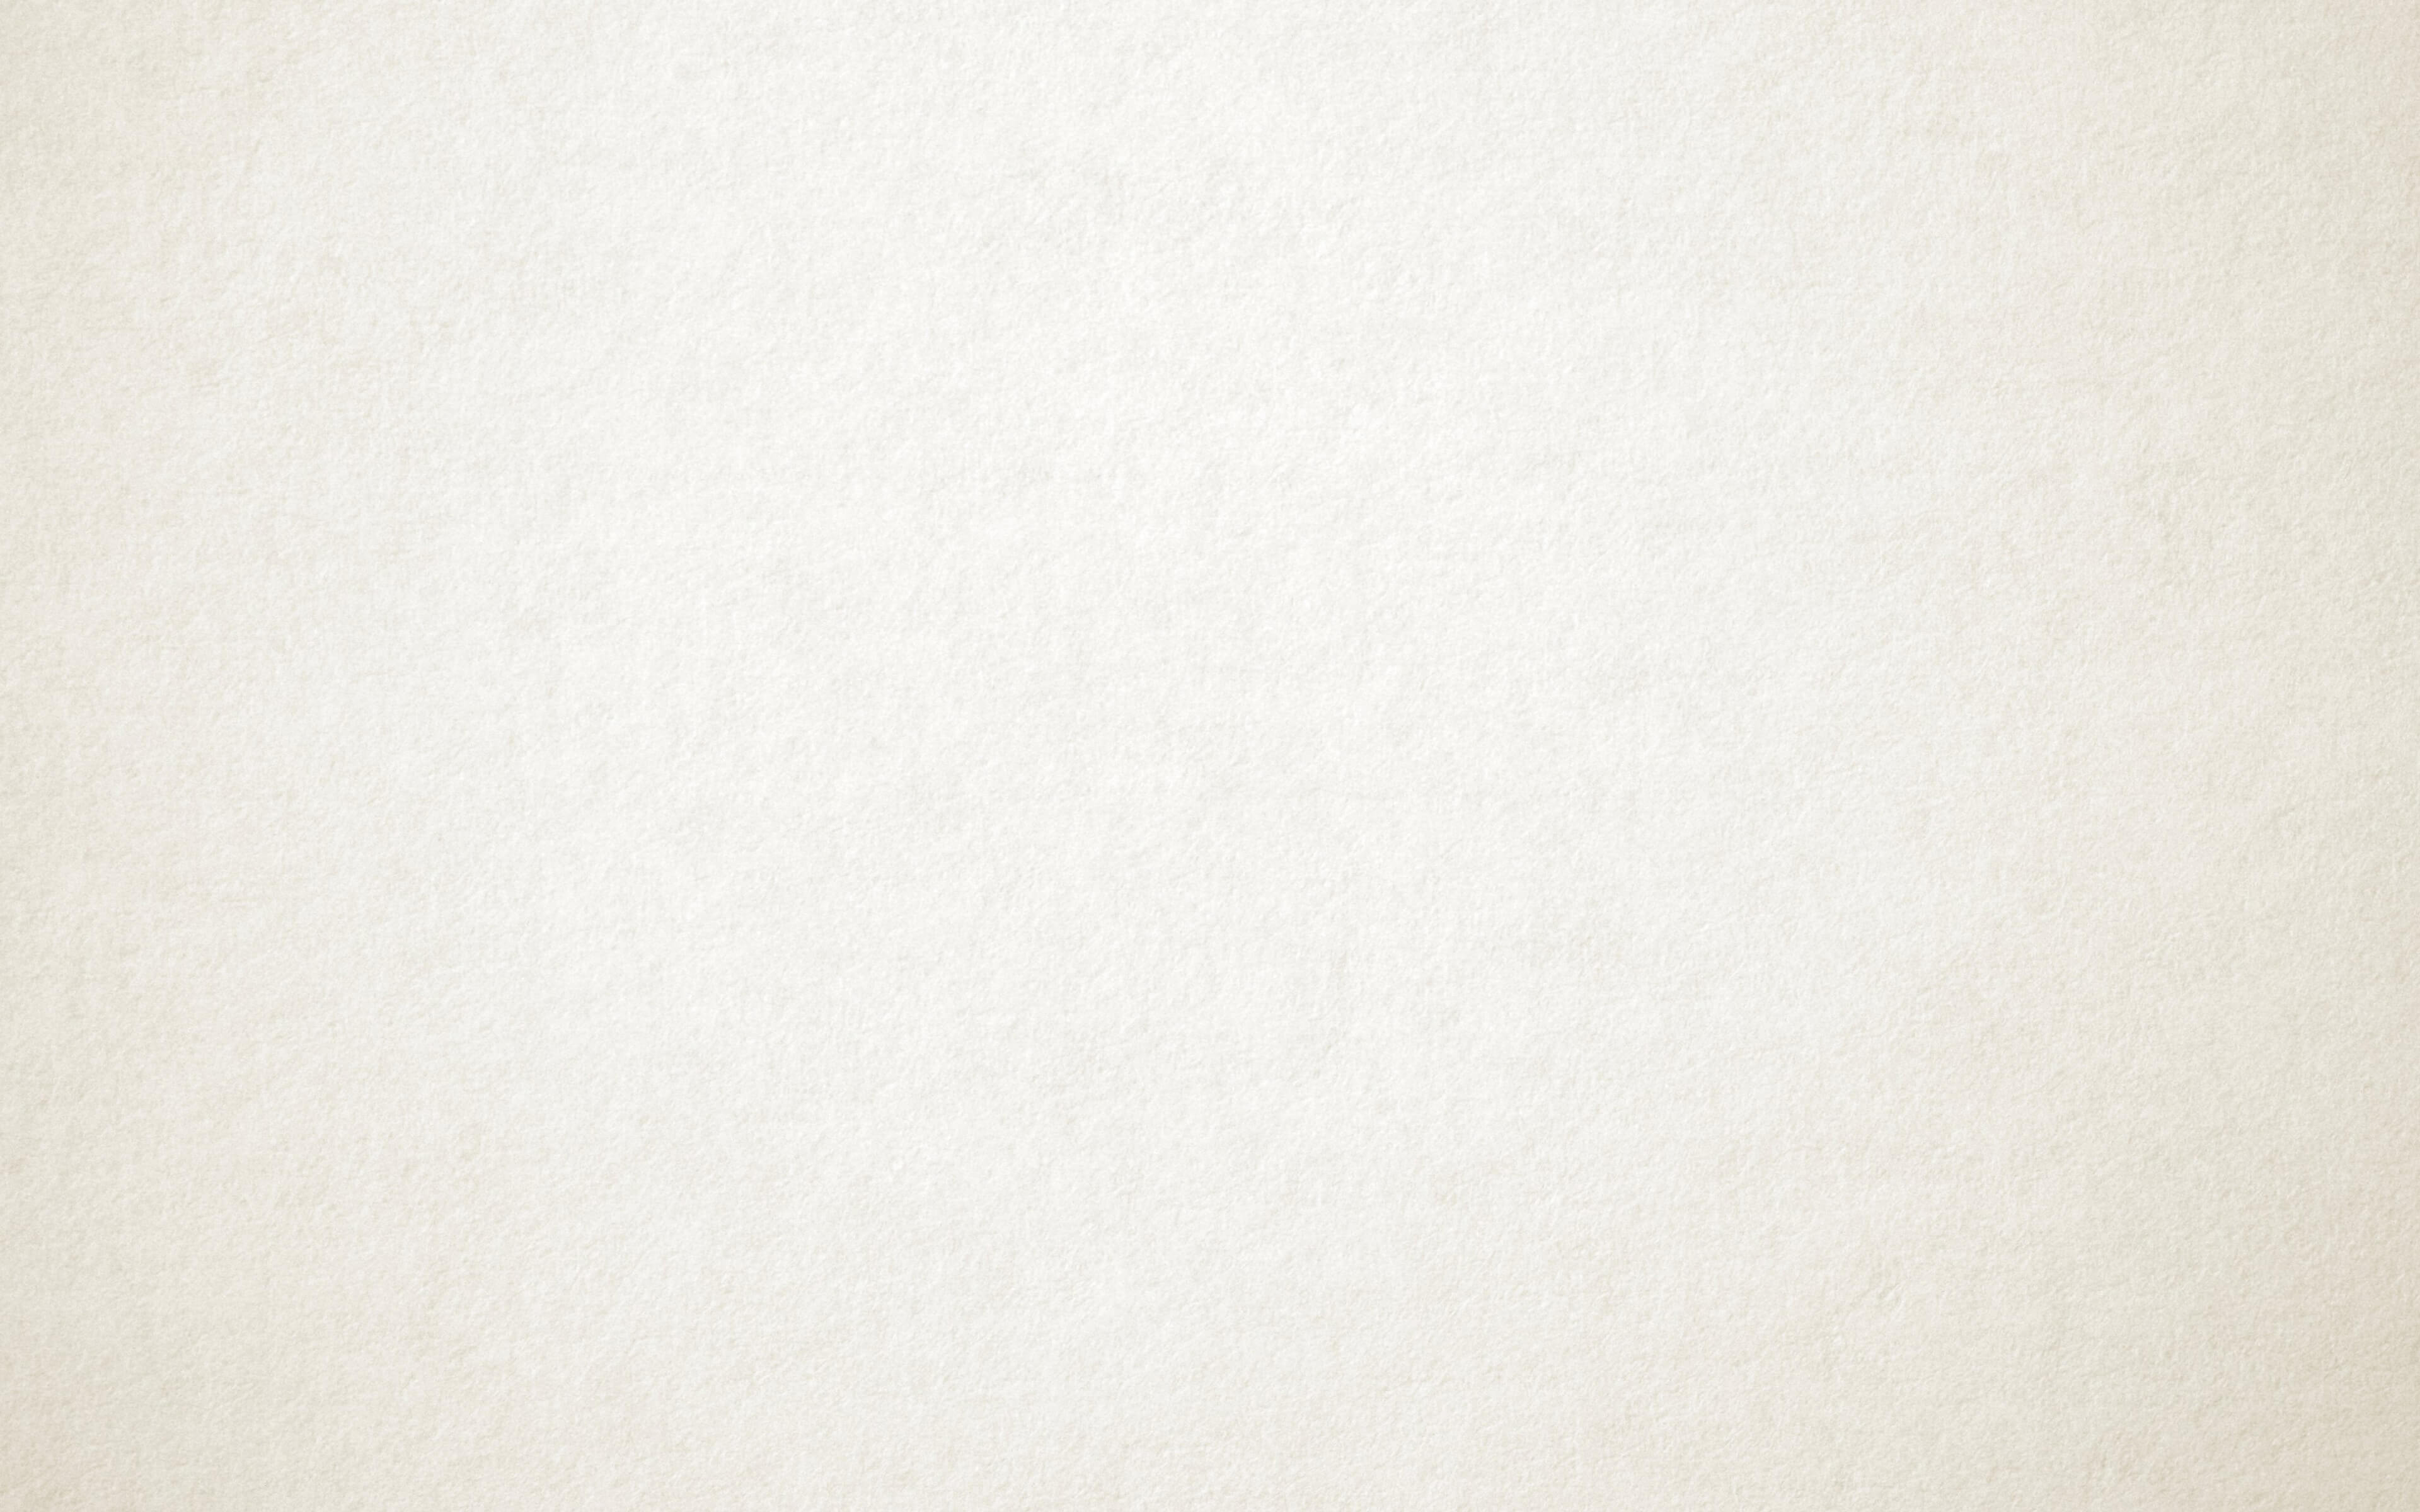 White Ivory Paper Texture 4K Wallpaper 3840x2400